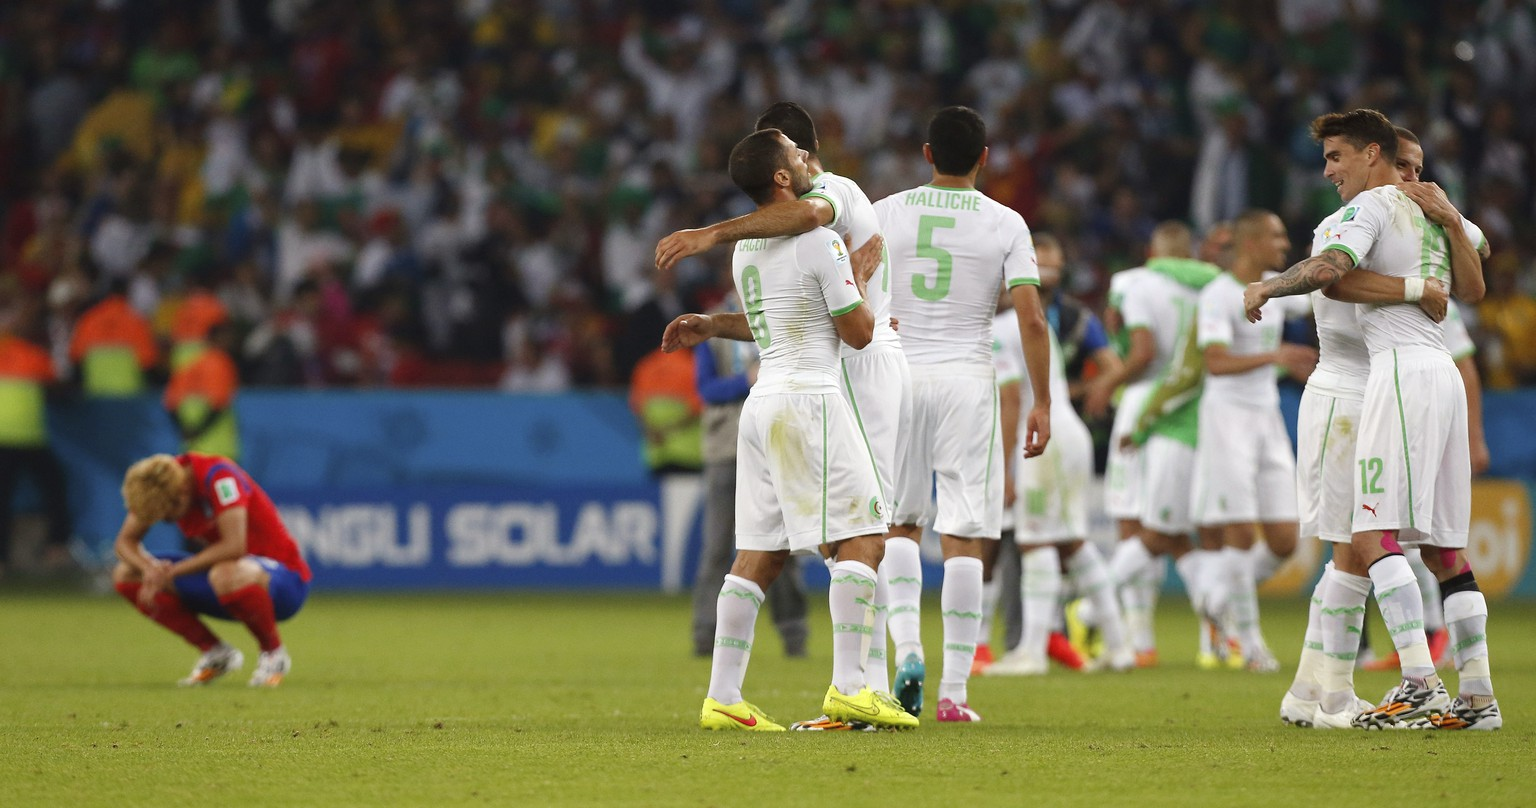 Algerian players celebrate after their 4-2 victory over South Korea during the group H World Cup soccer match between South Korea and Algeria at the Estadio Beira-Rio in Porto Alegre, Brazil, Sunday, June 22, 2014. (AP Photo/Jon Super)